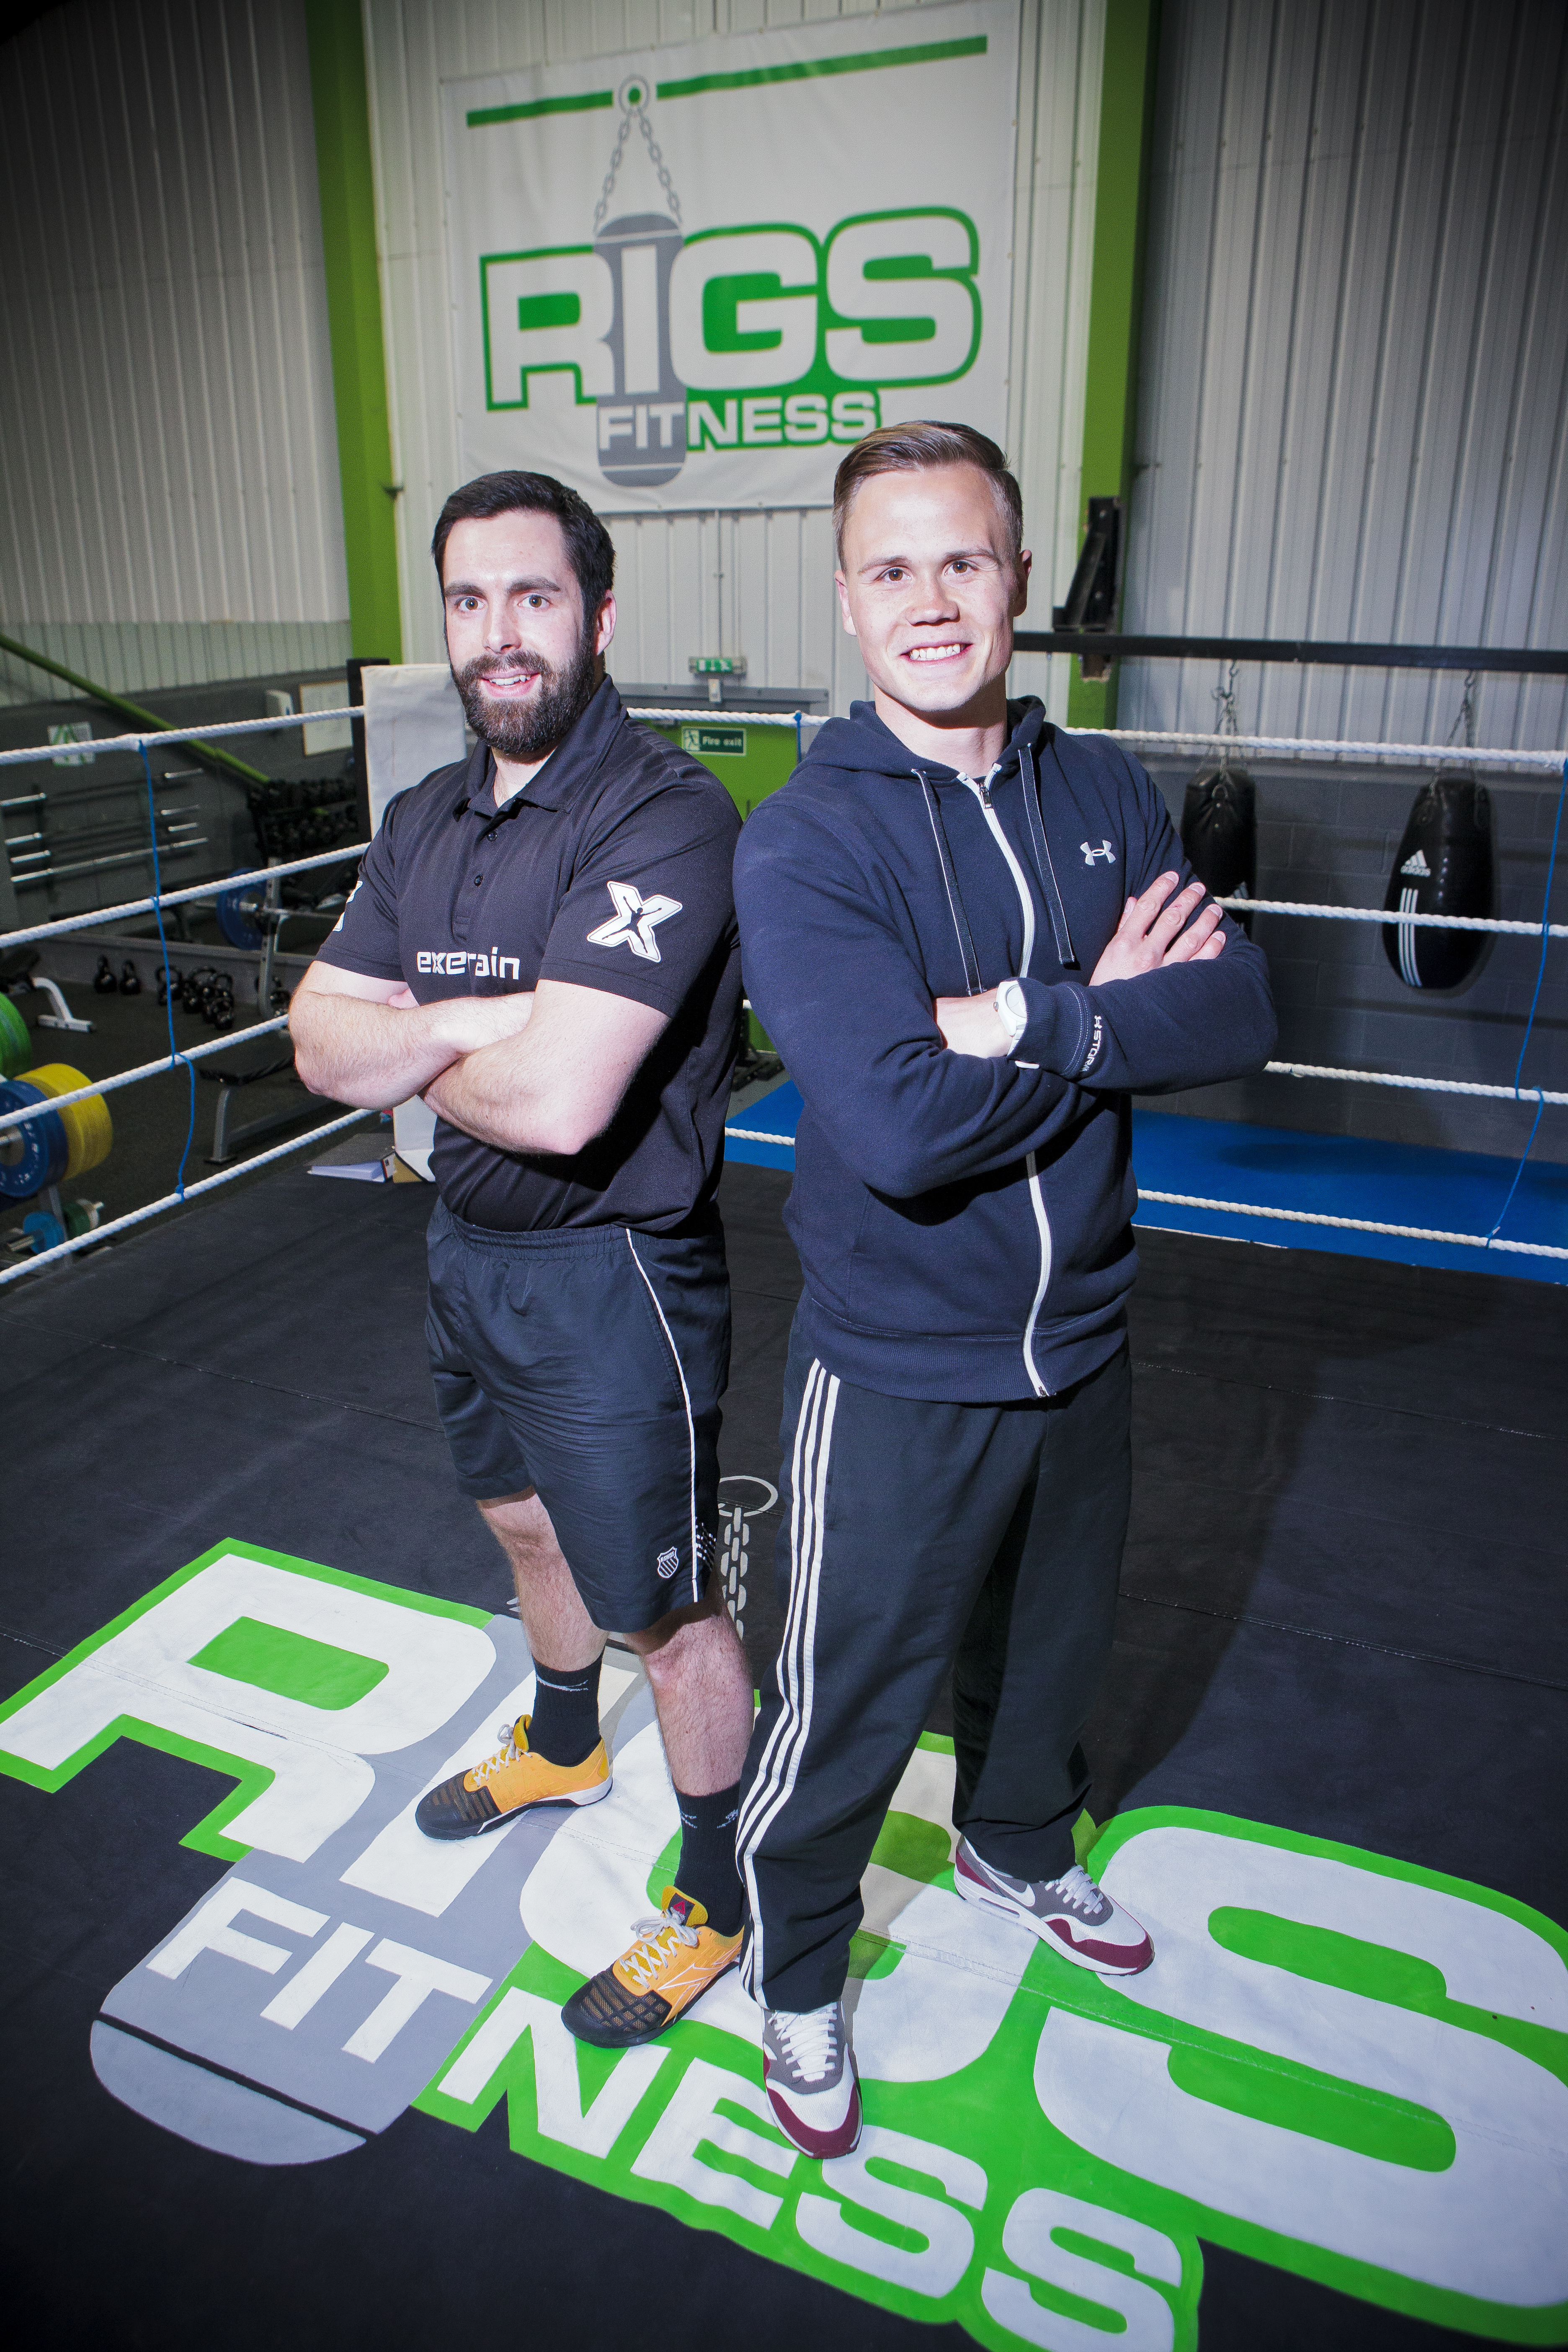 Dean Kent Exertrain and Sam Smith Rigs Fitness